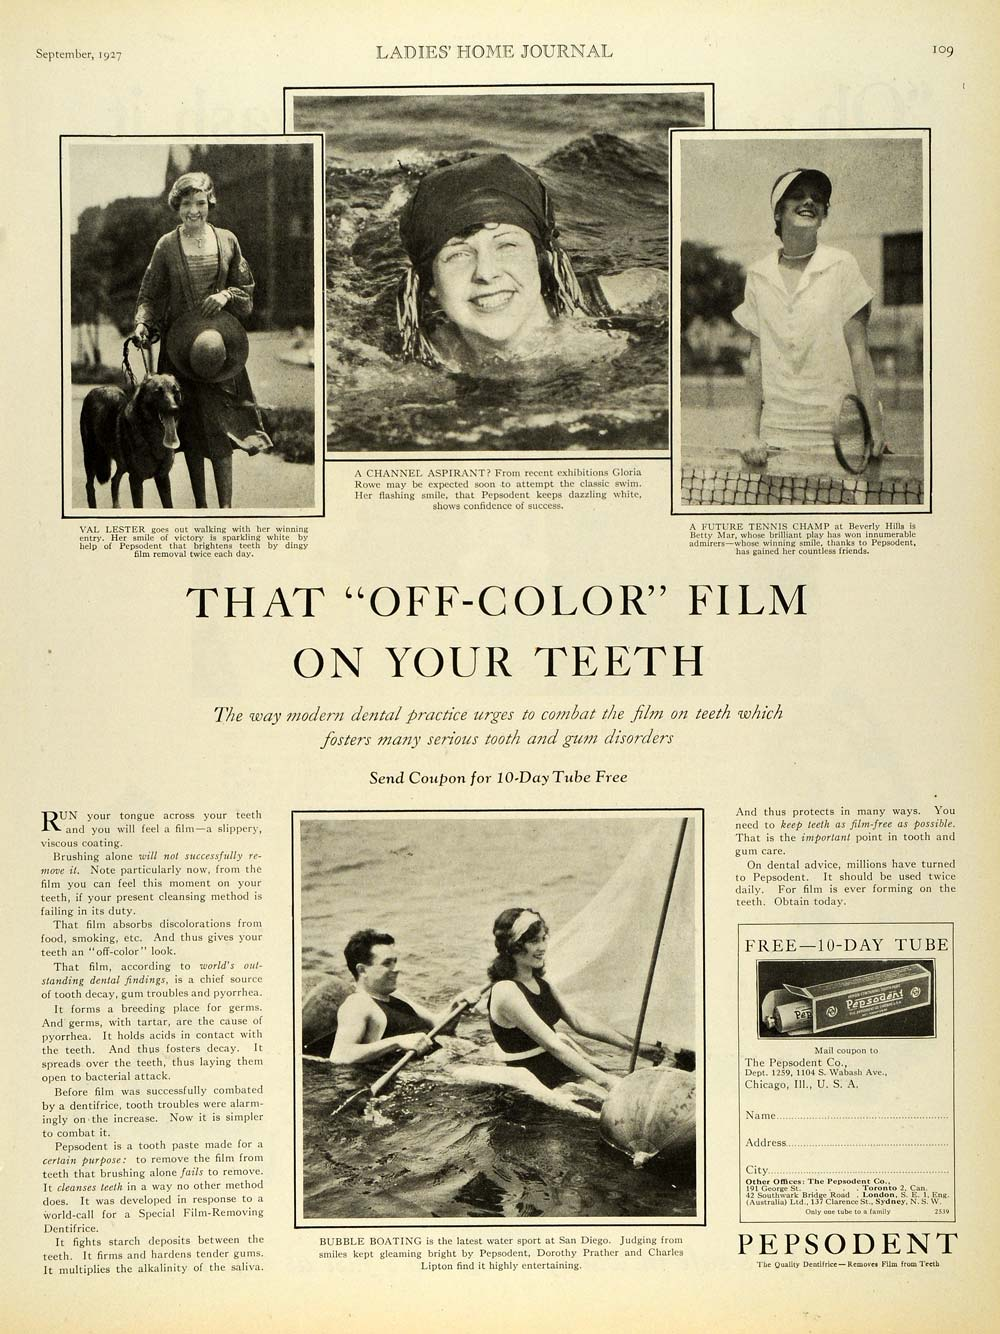 1927 Ad Pepsodent Toothpaste Val Lester Betty Mar Rowe Dentifrice Whitener LHJ7